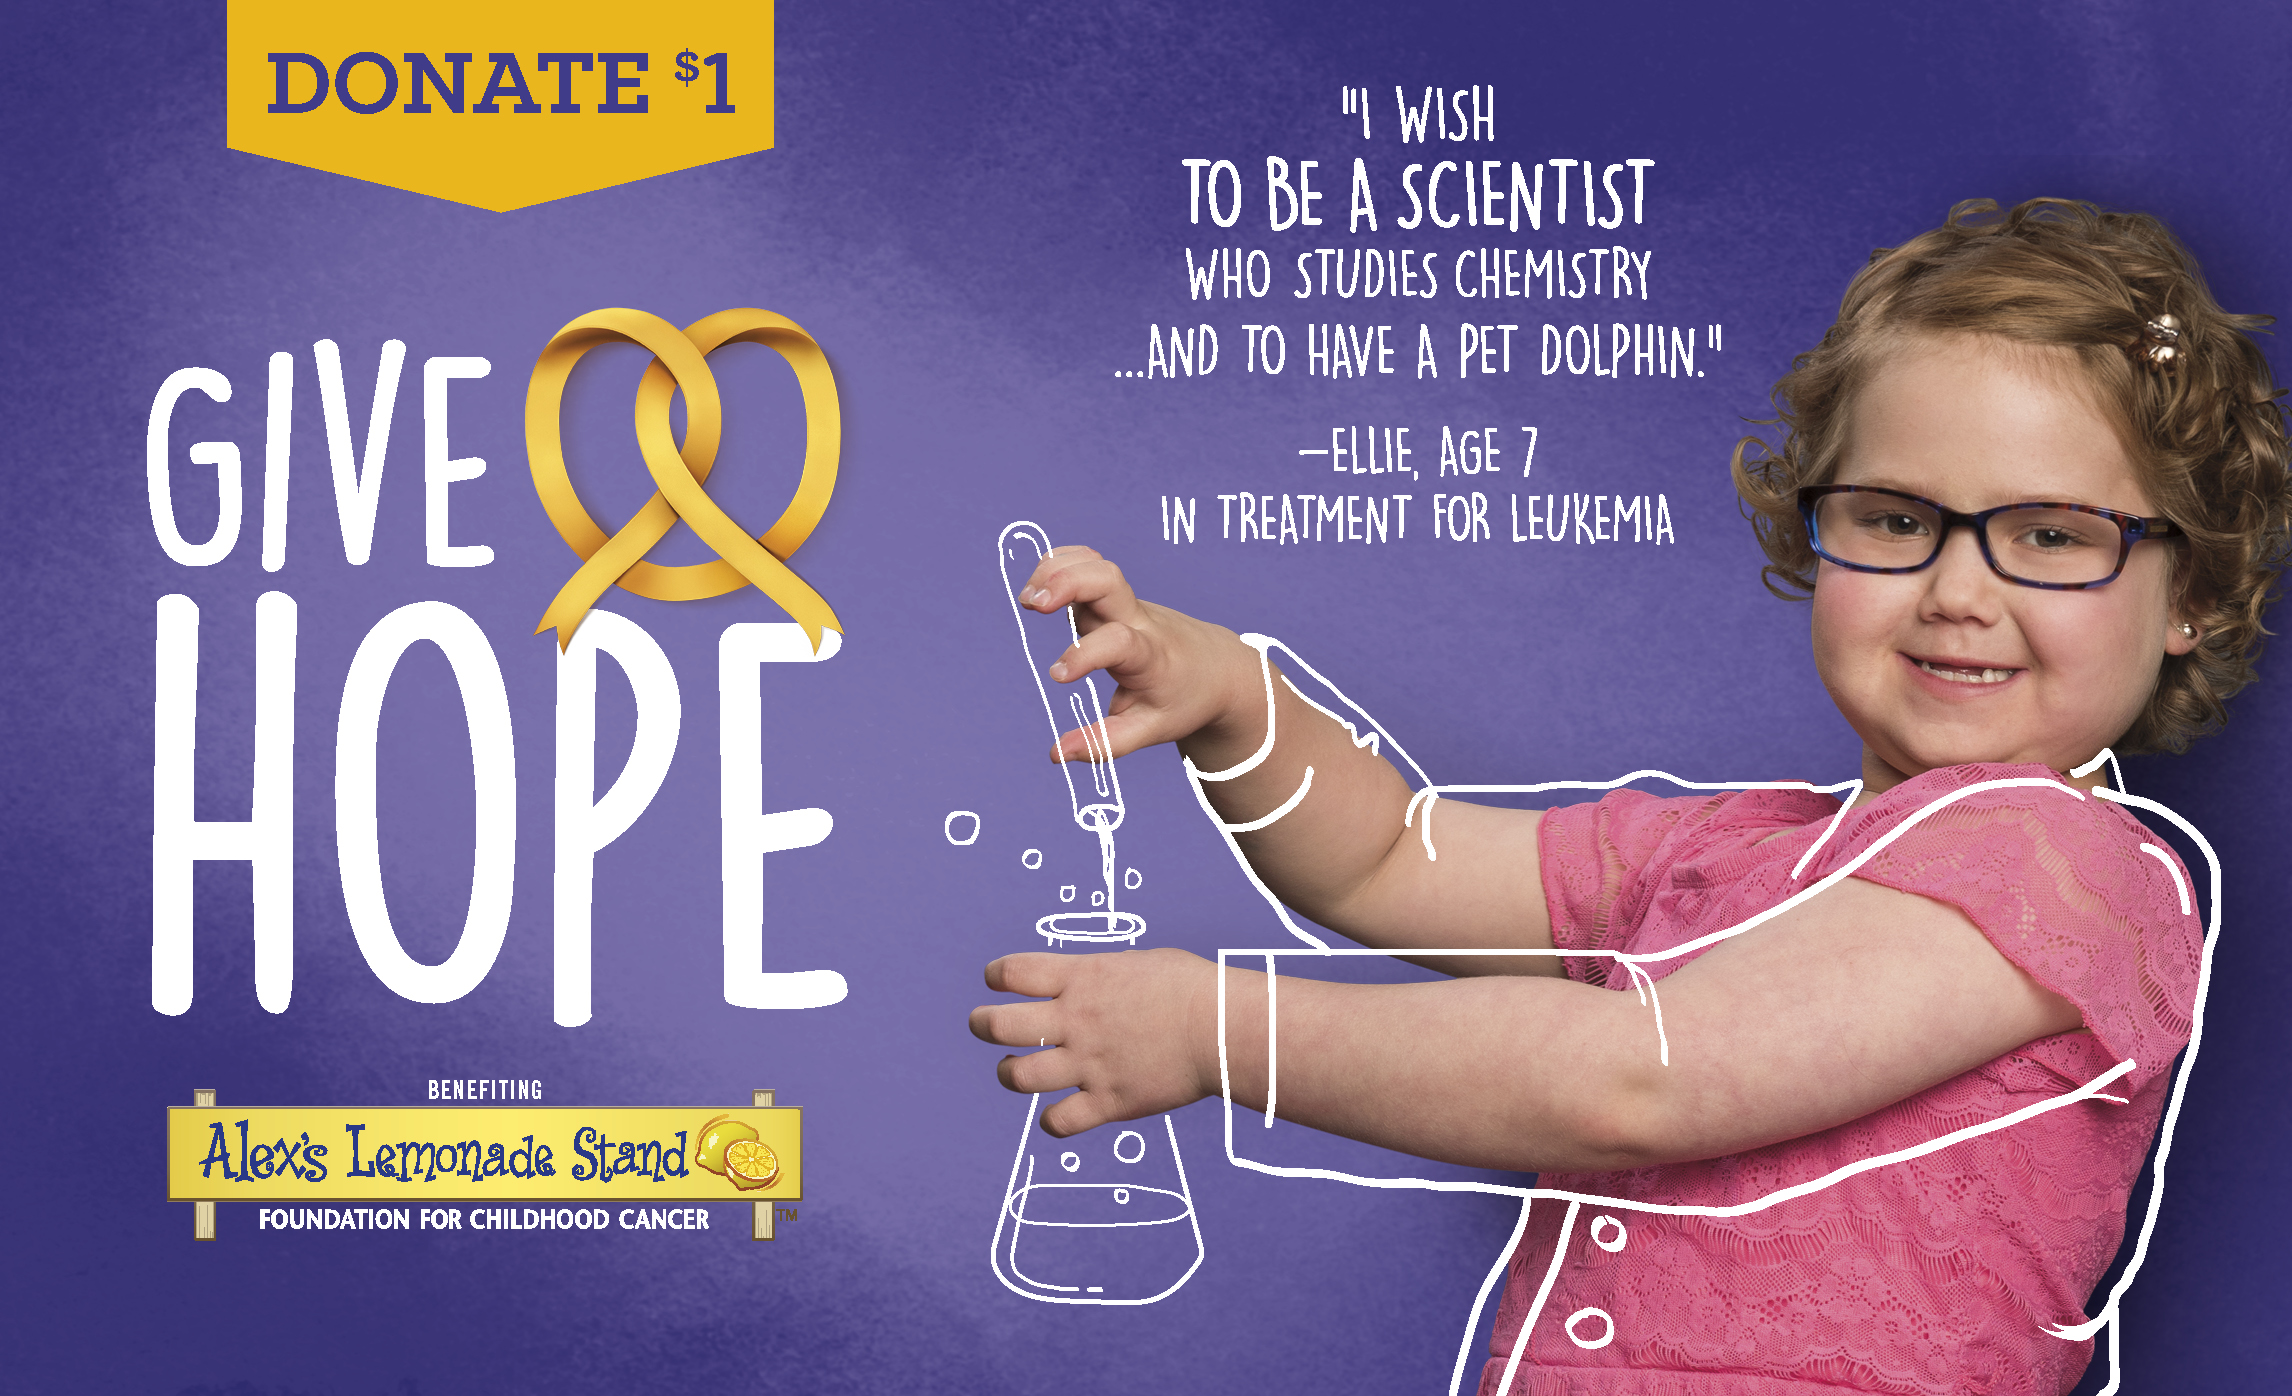 Auntie Anne's® kicks off its fifth annual in-store fundraising campaign to support Alex's Lemonade Stand Foundation